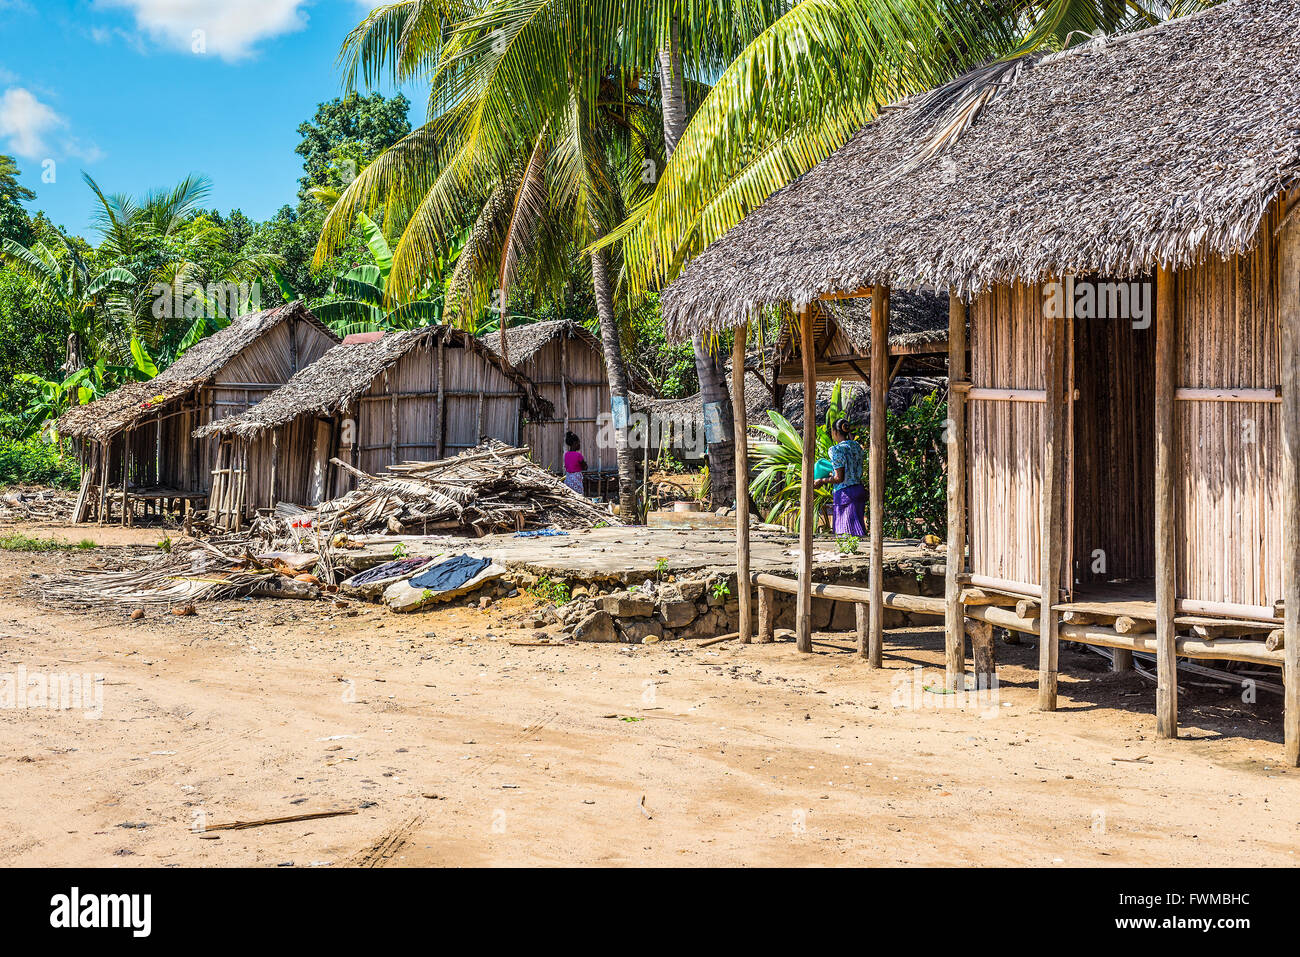 Malagasy typical village on the beach in Nosy Be island, north of Madagascar - Stock Image